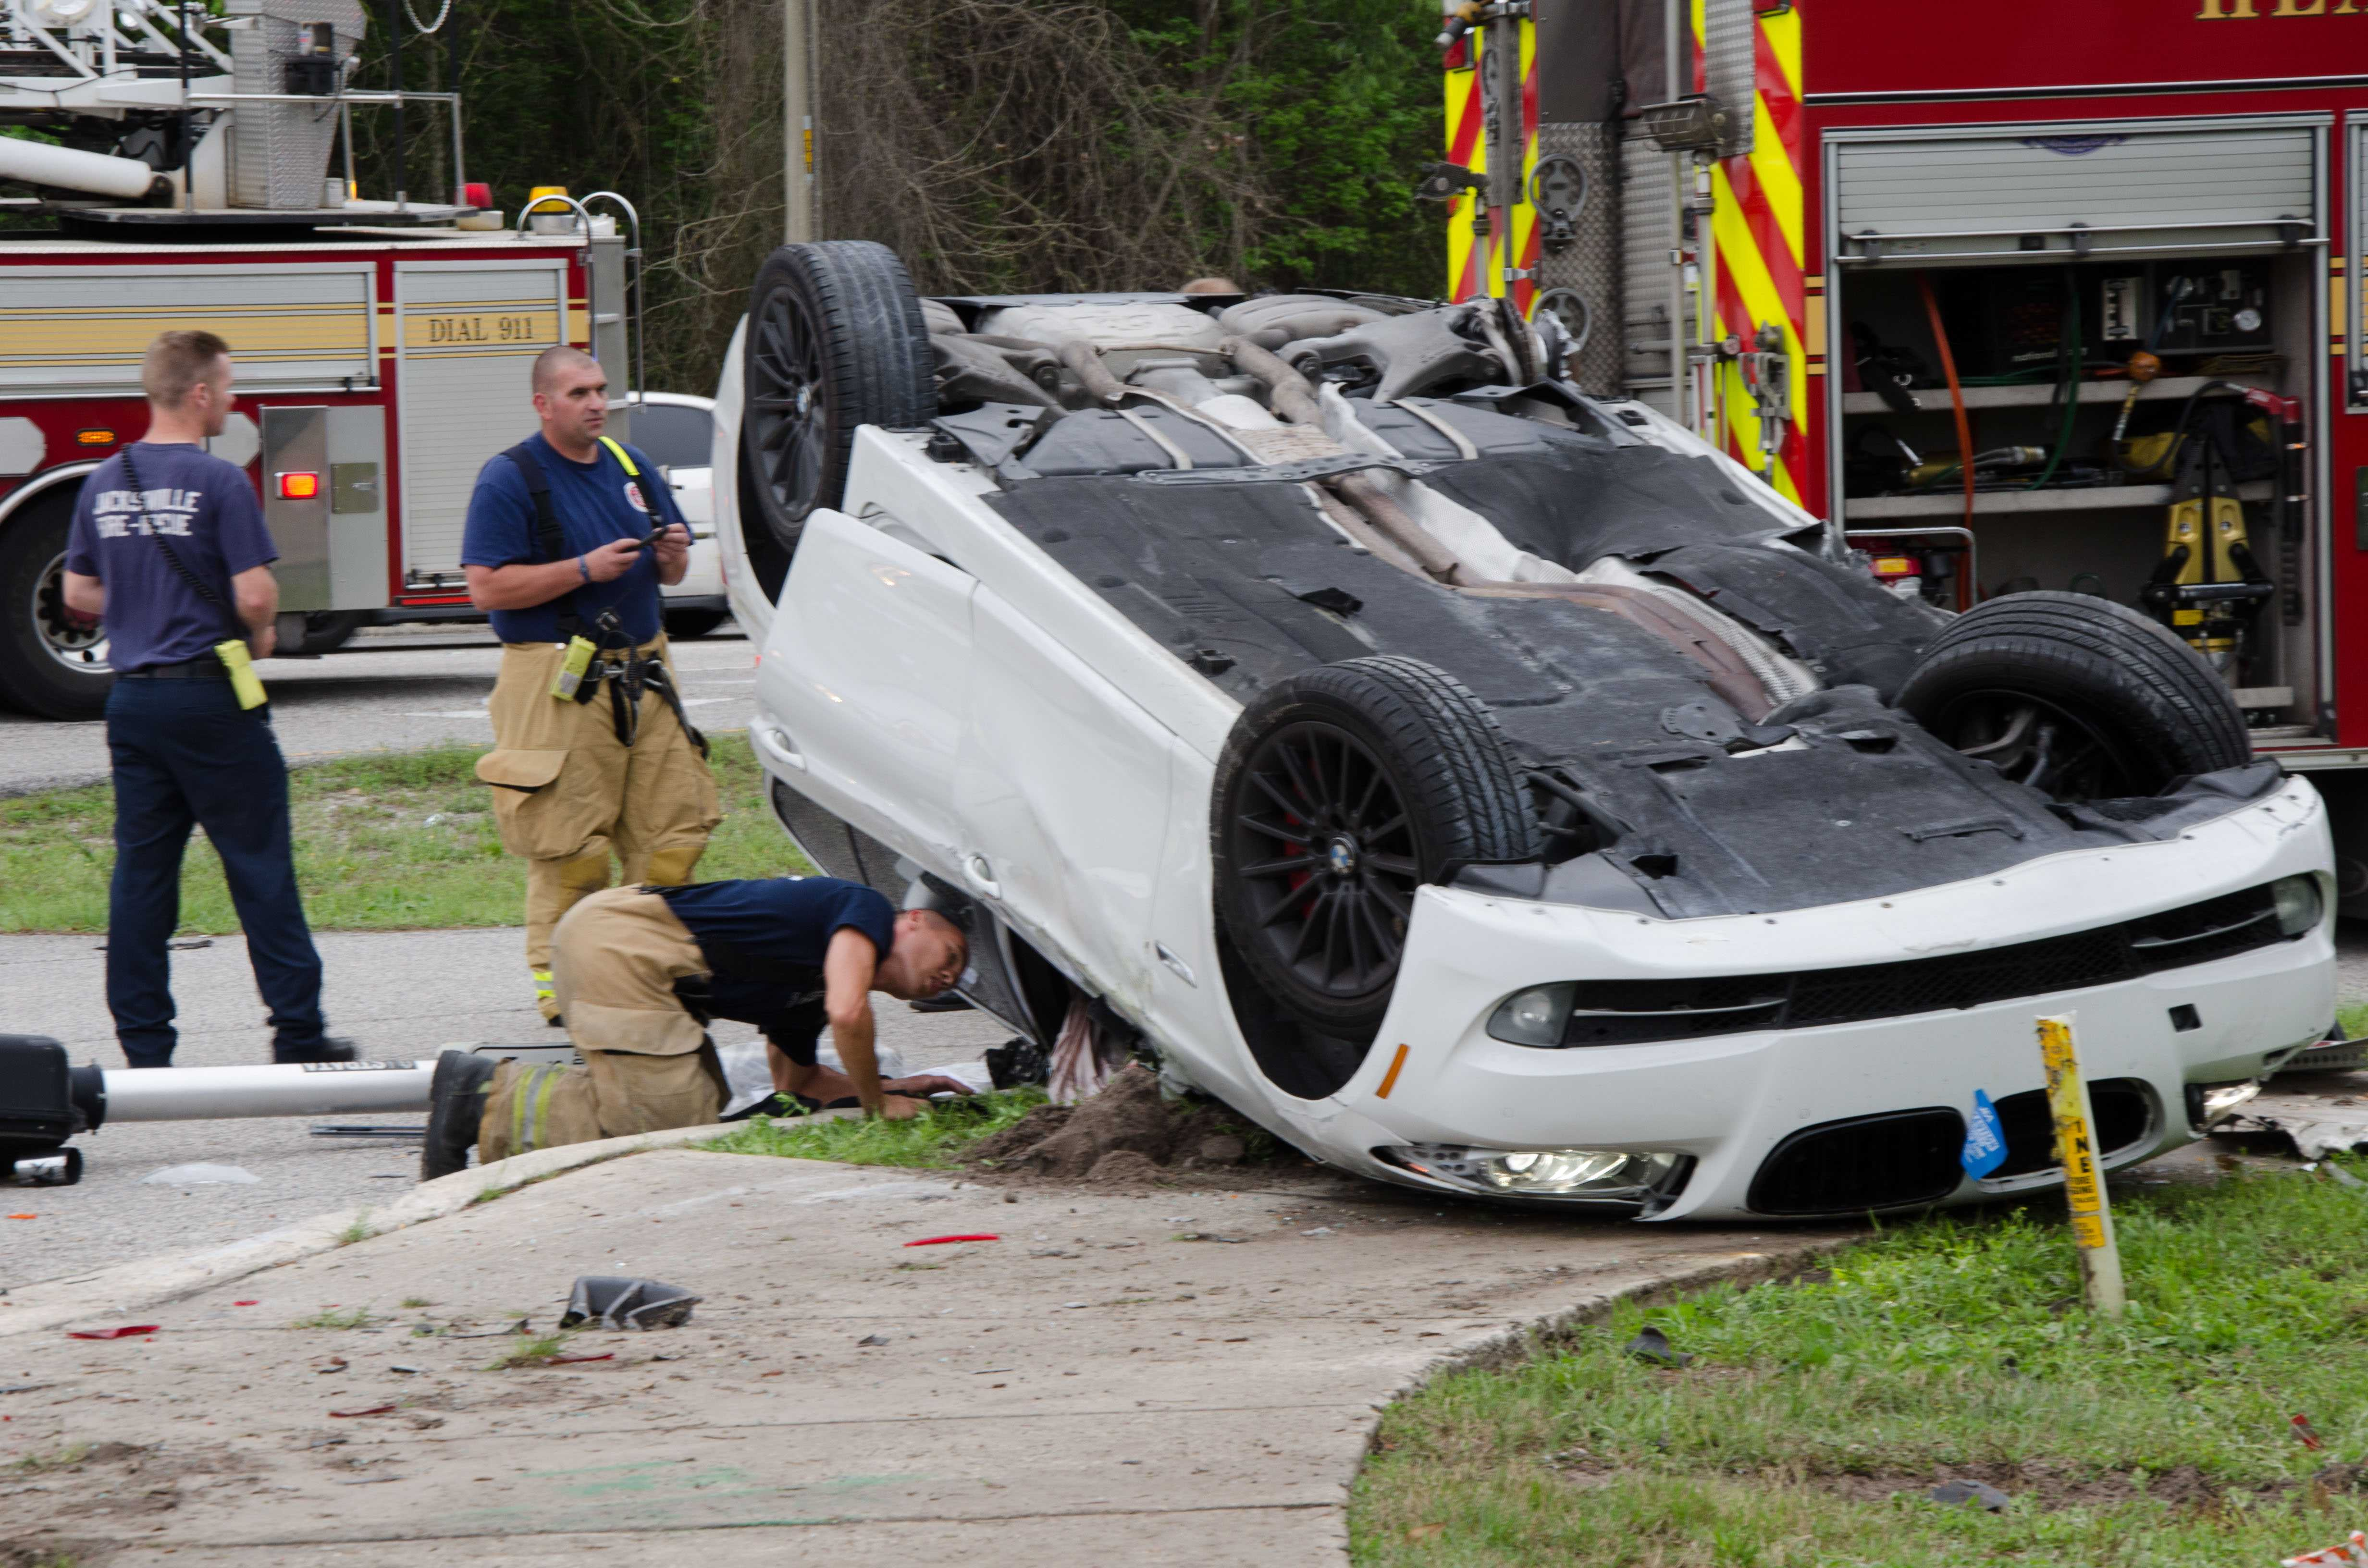 VIDEO: Two-car rollover shuts down Alumni Drive; drivers transported to hospital